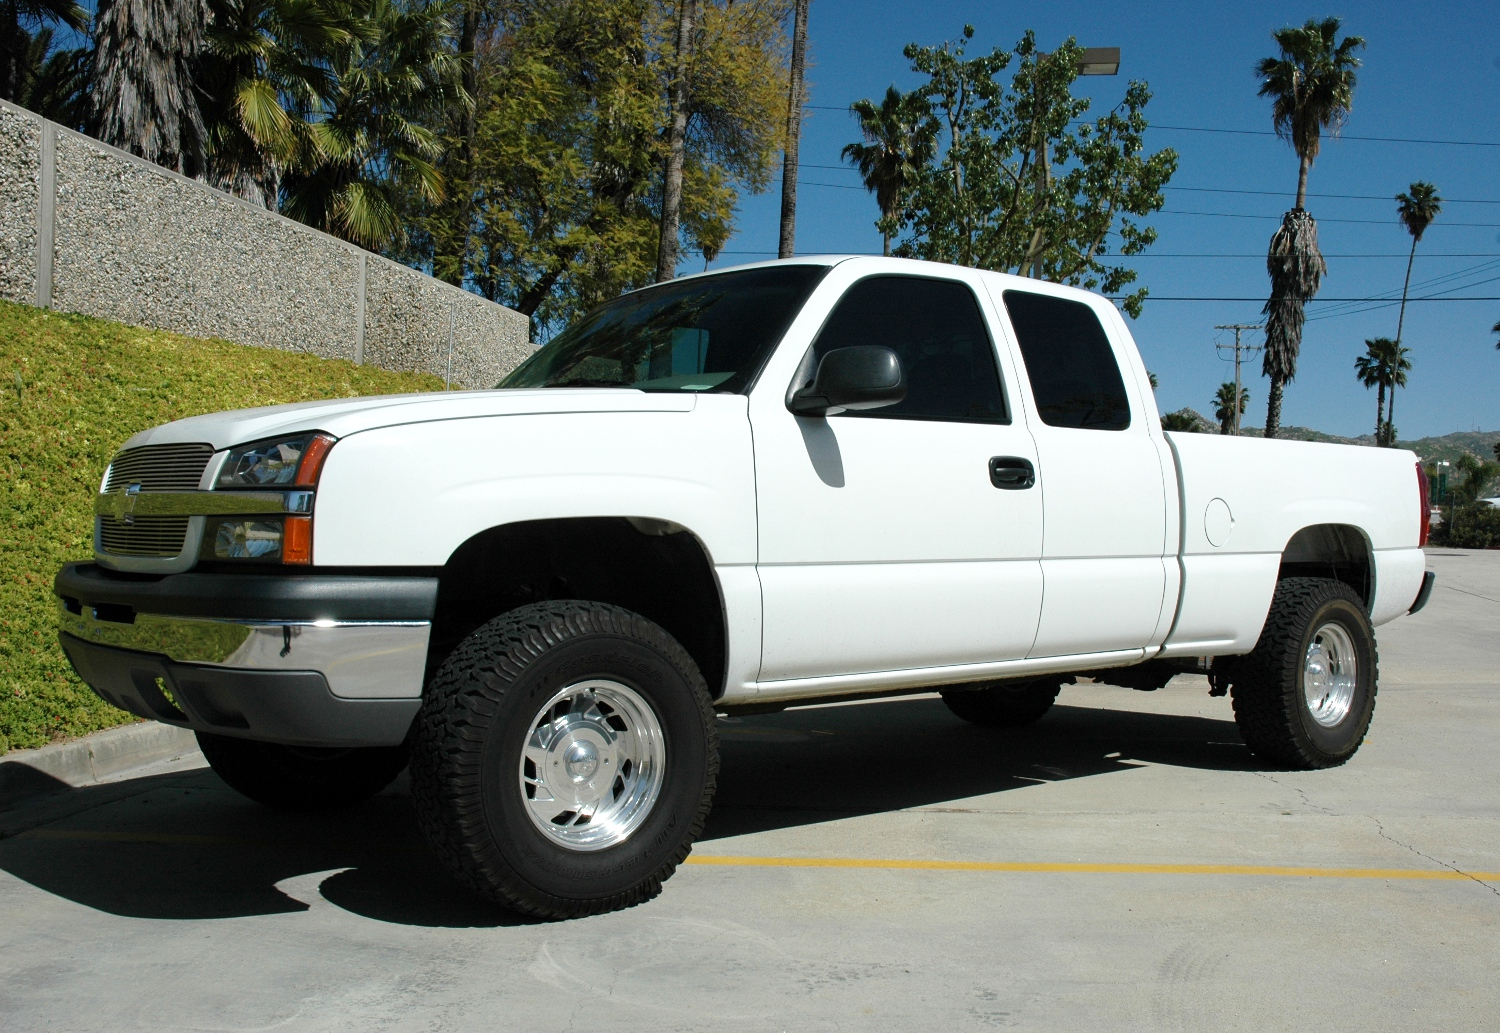 1999 2006 chevy silverado gmc sierra 1500 2wd models lift kit crew cabs only by cst suspension 7 front 4 rear lift